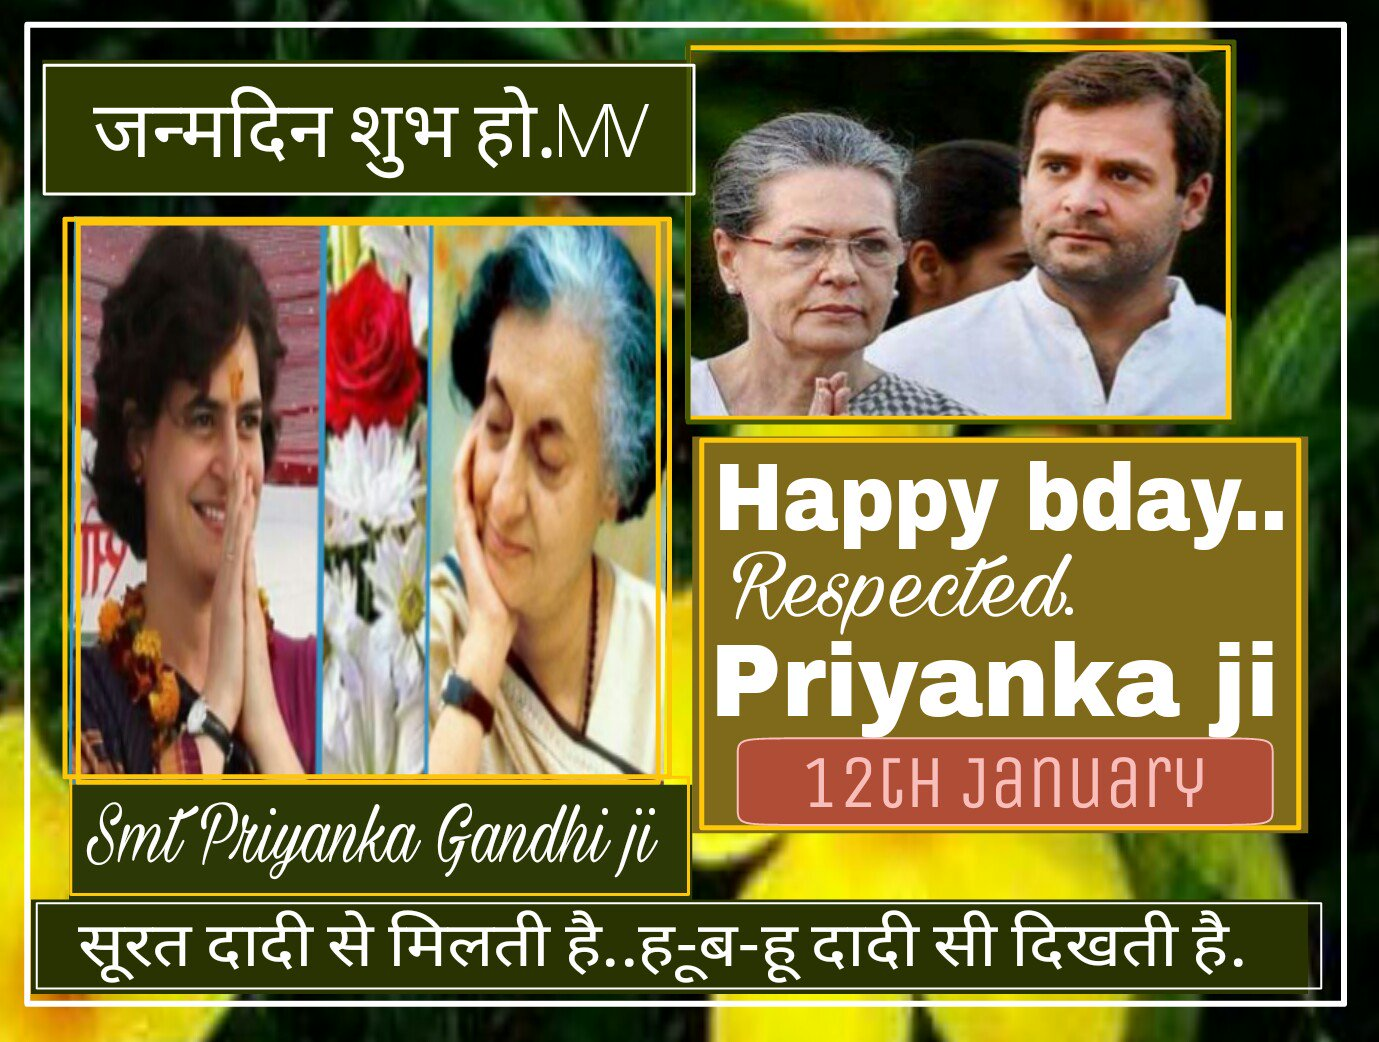 Happy bday.. Respected Priyanka Gandhi ji.12th January.